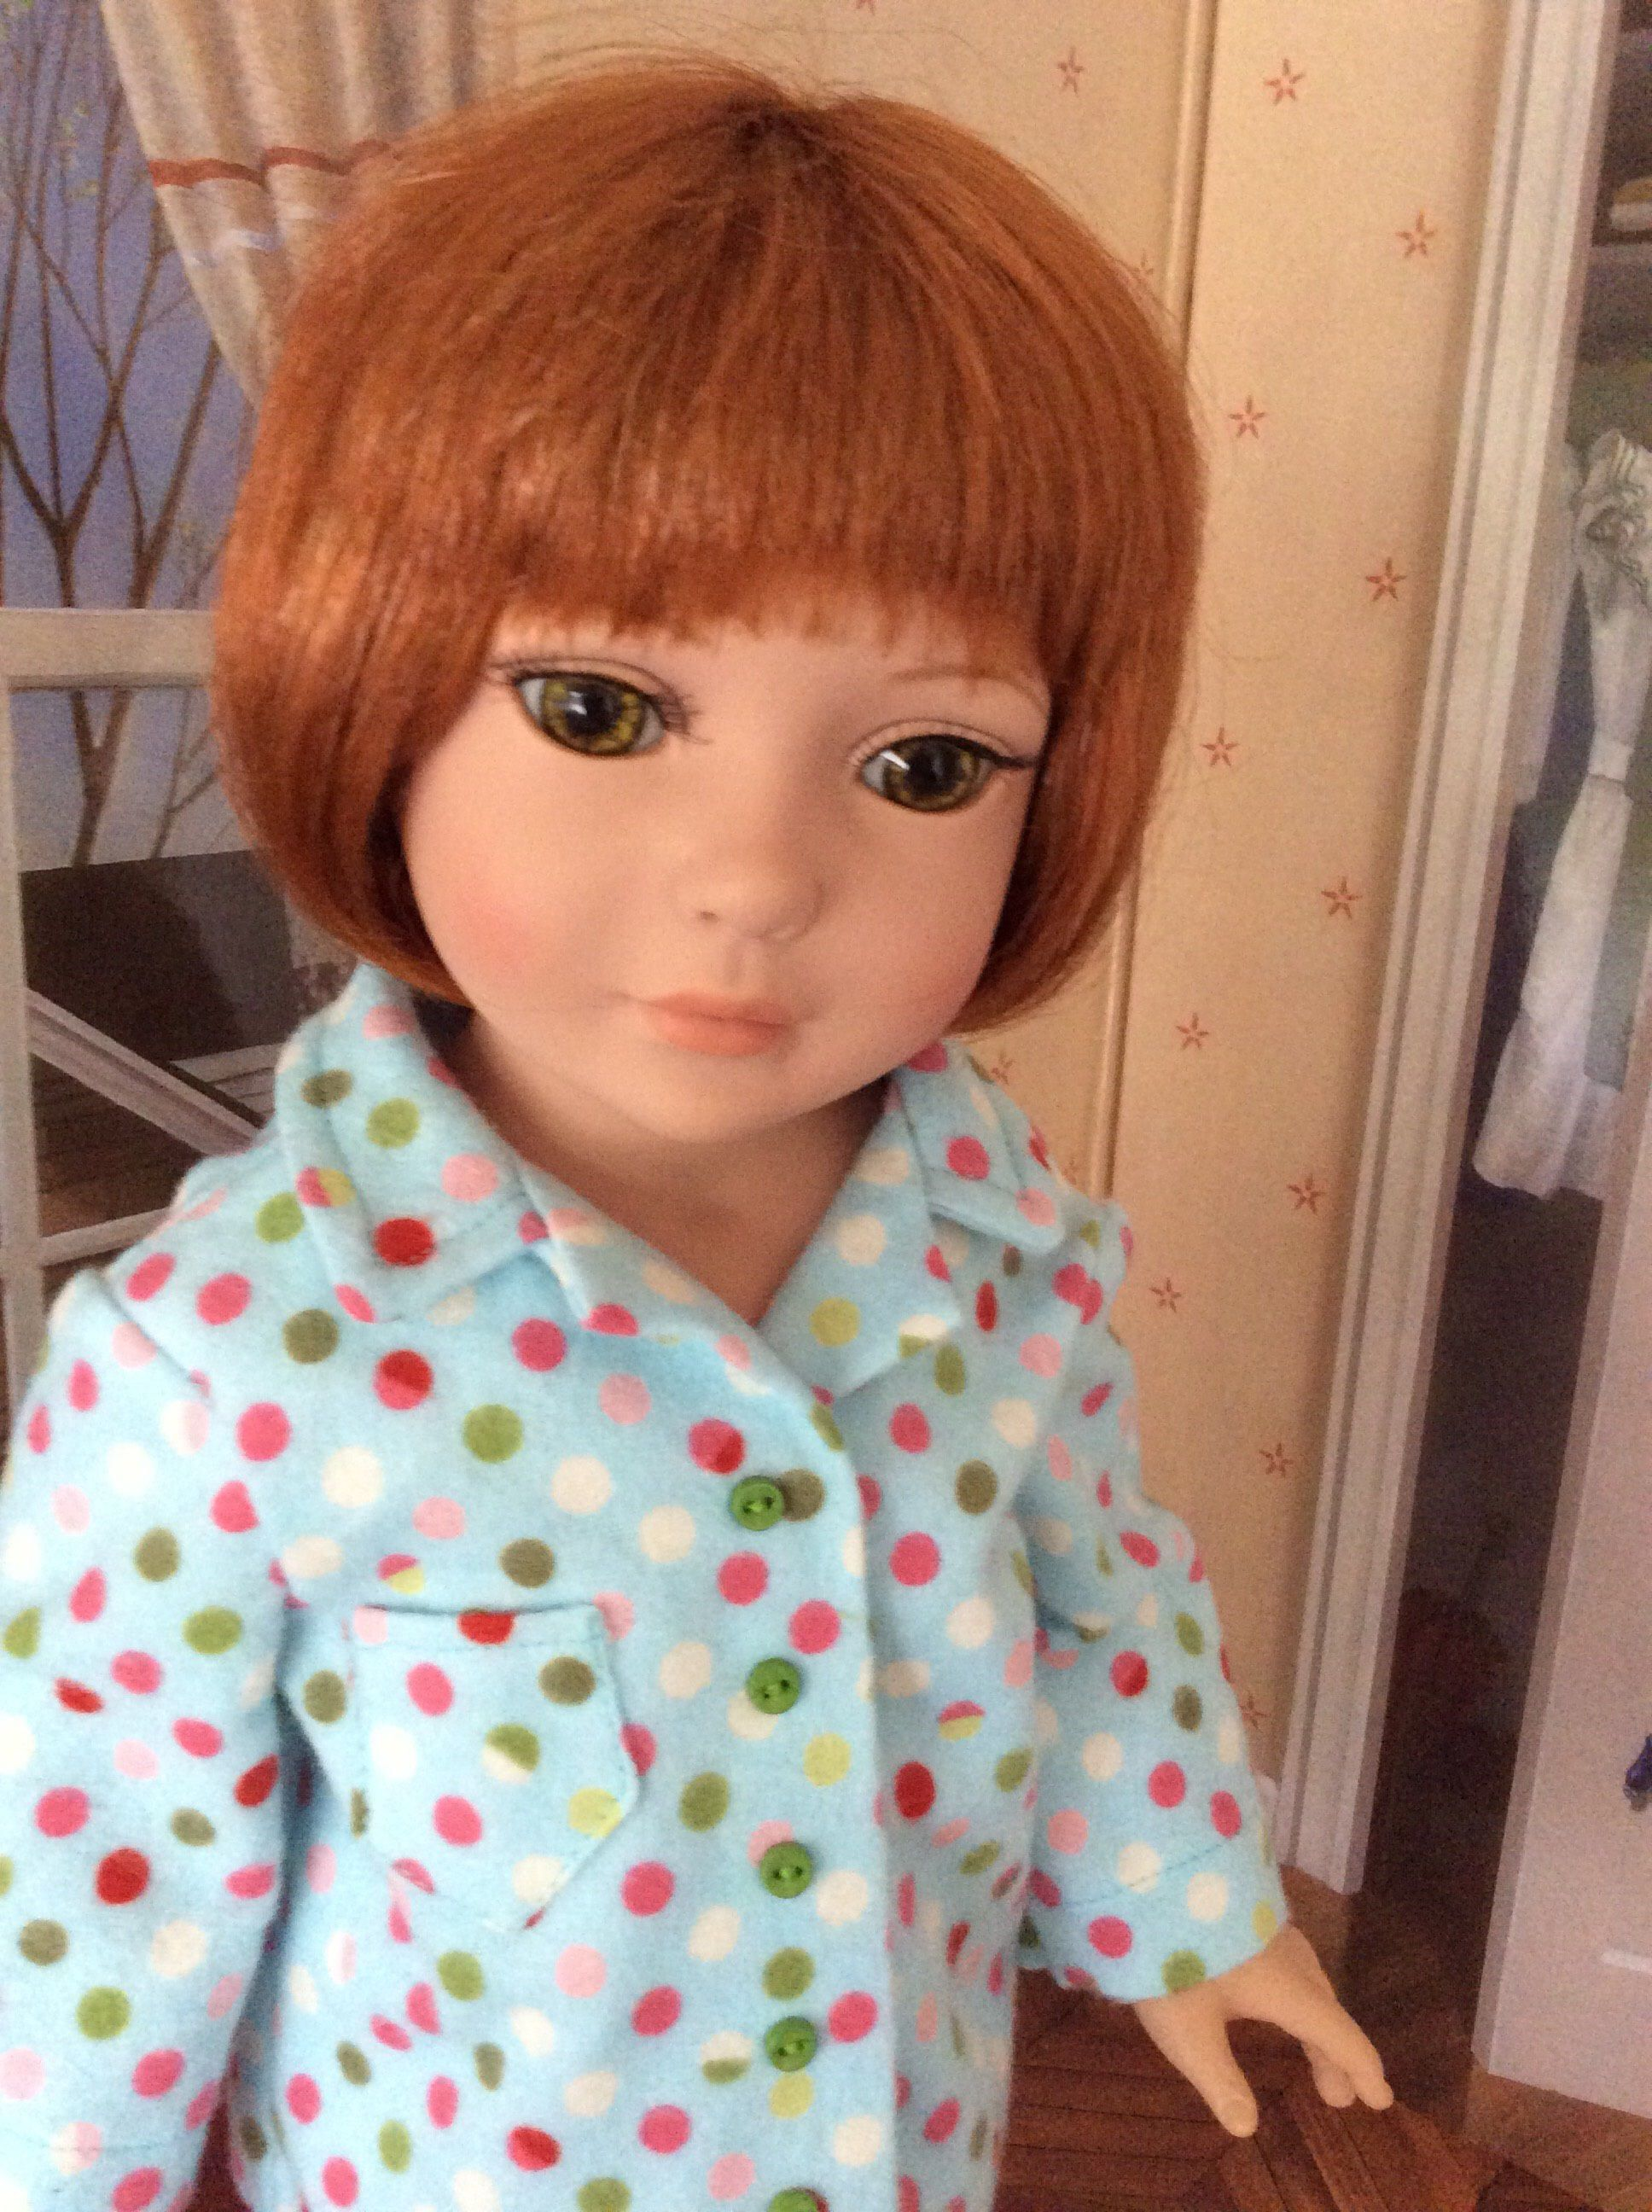 American Made Girl Doll Clothing-Sweet Dreams Flannel Pajamas for 18 Inch Dolls Will Fit Robert Tonner's My Imagination™ OOAK #18inchdollsandclothes